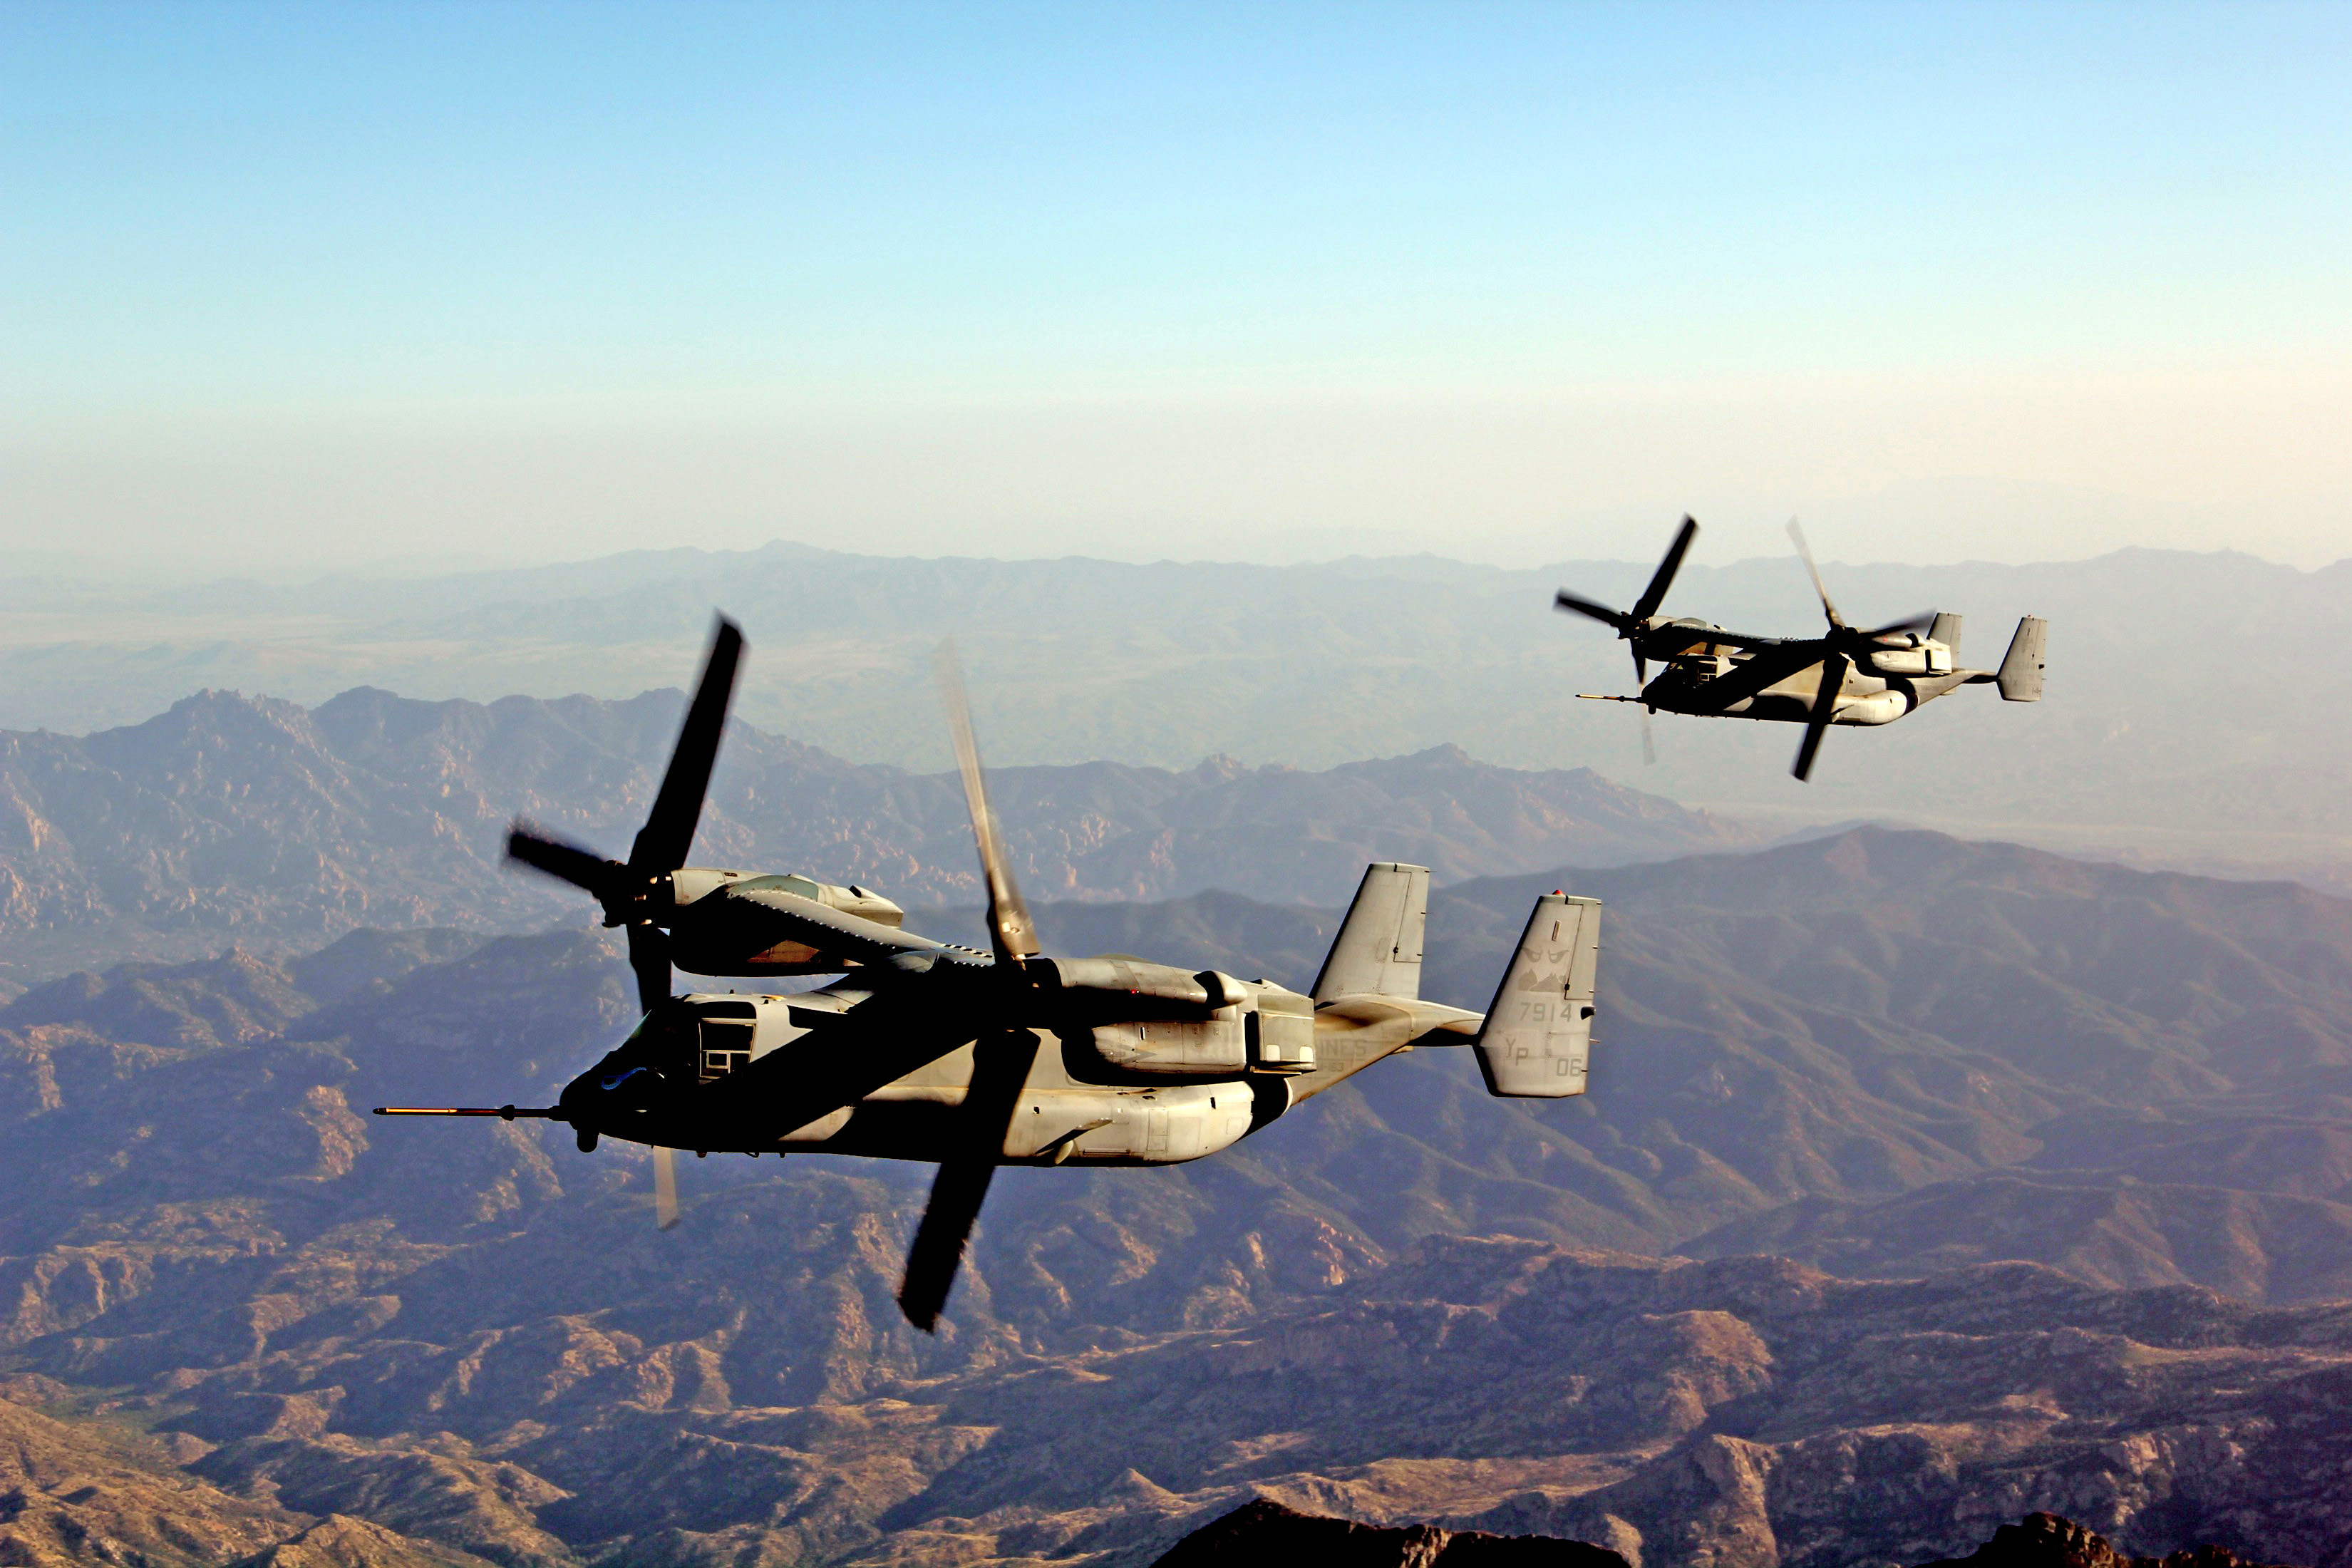 Two MV-22B Ospreys prepare for refueling during an aerial refueling training exercise as part of Weapons and Tactics Instructor course aboard Marine Corps Air Station Yuma, Ariz., April 8, 2015, the same exercise that hosted the CAC2S operational assessment. US Marine Corps photo.